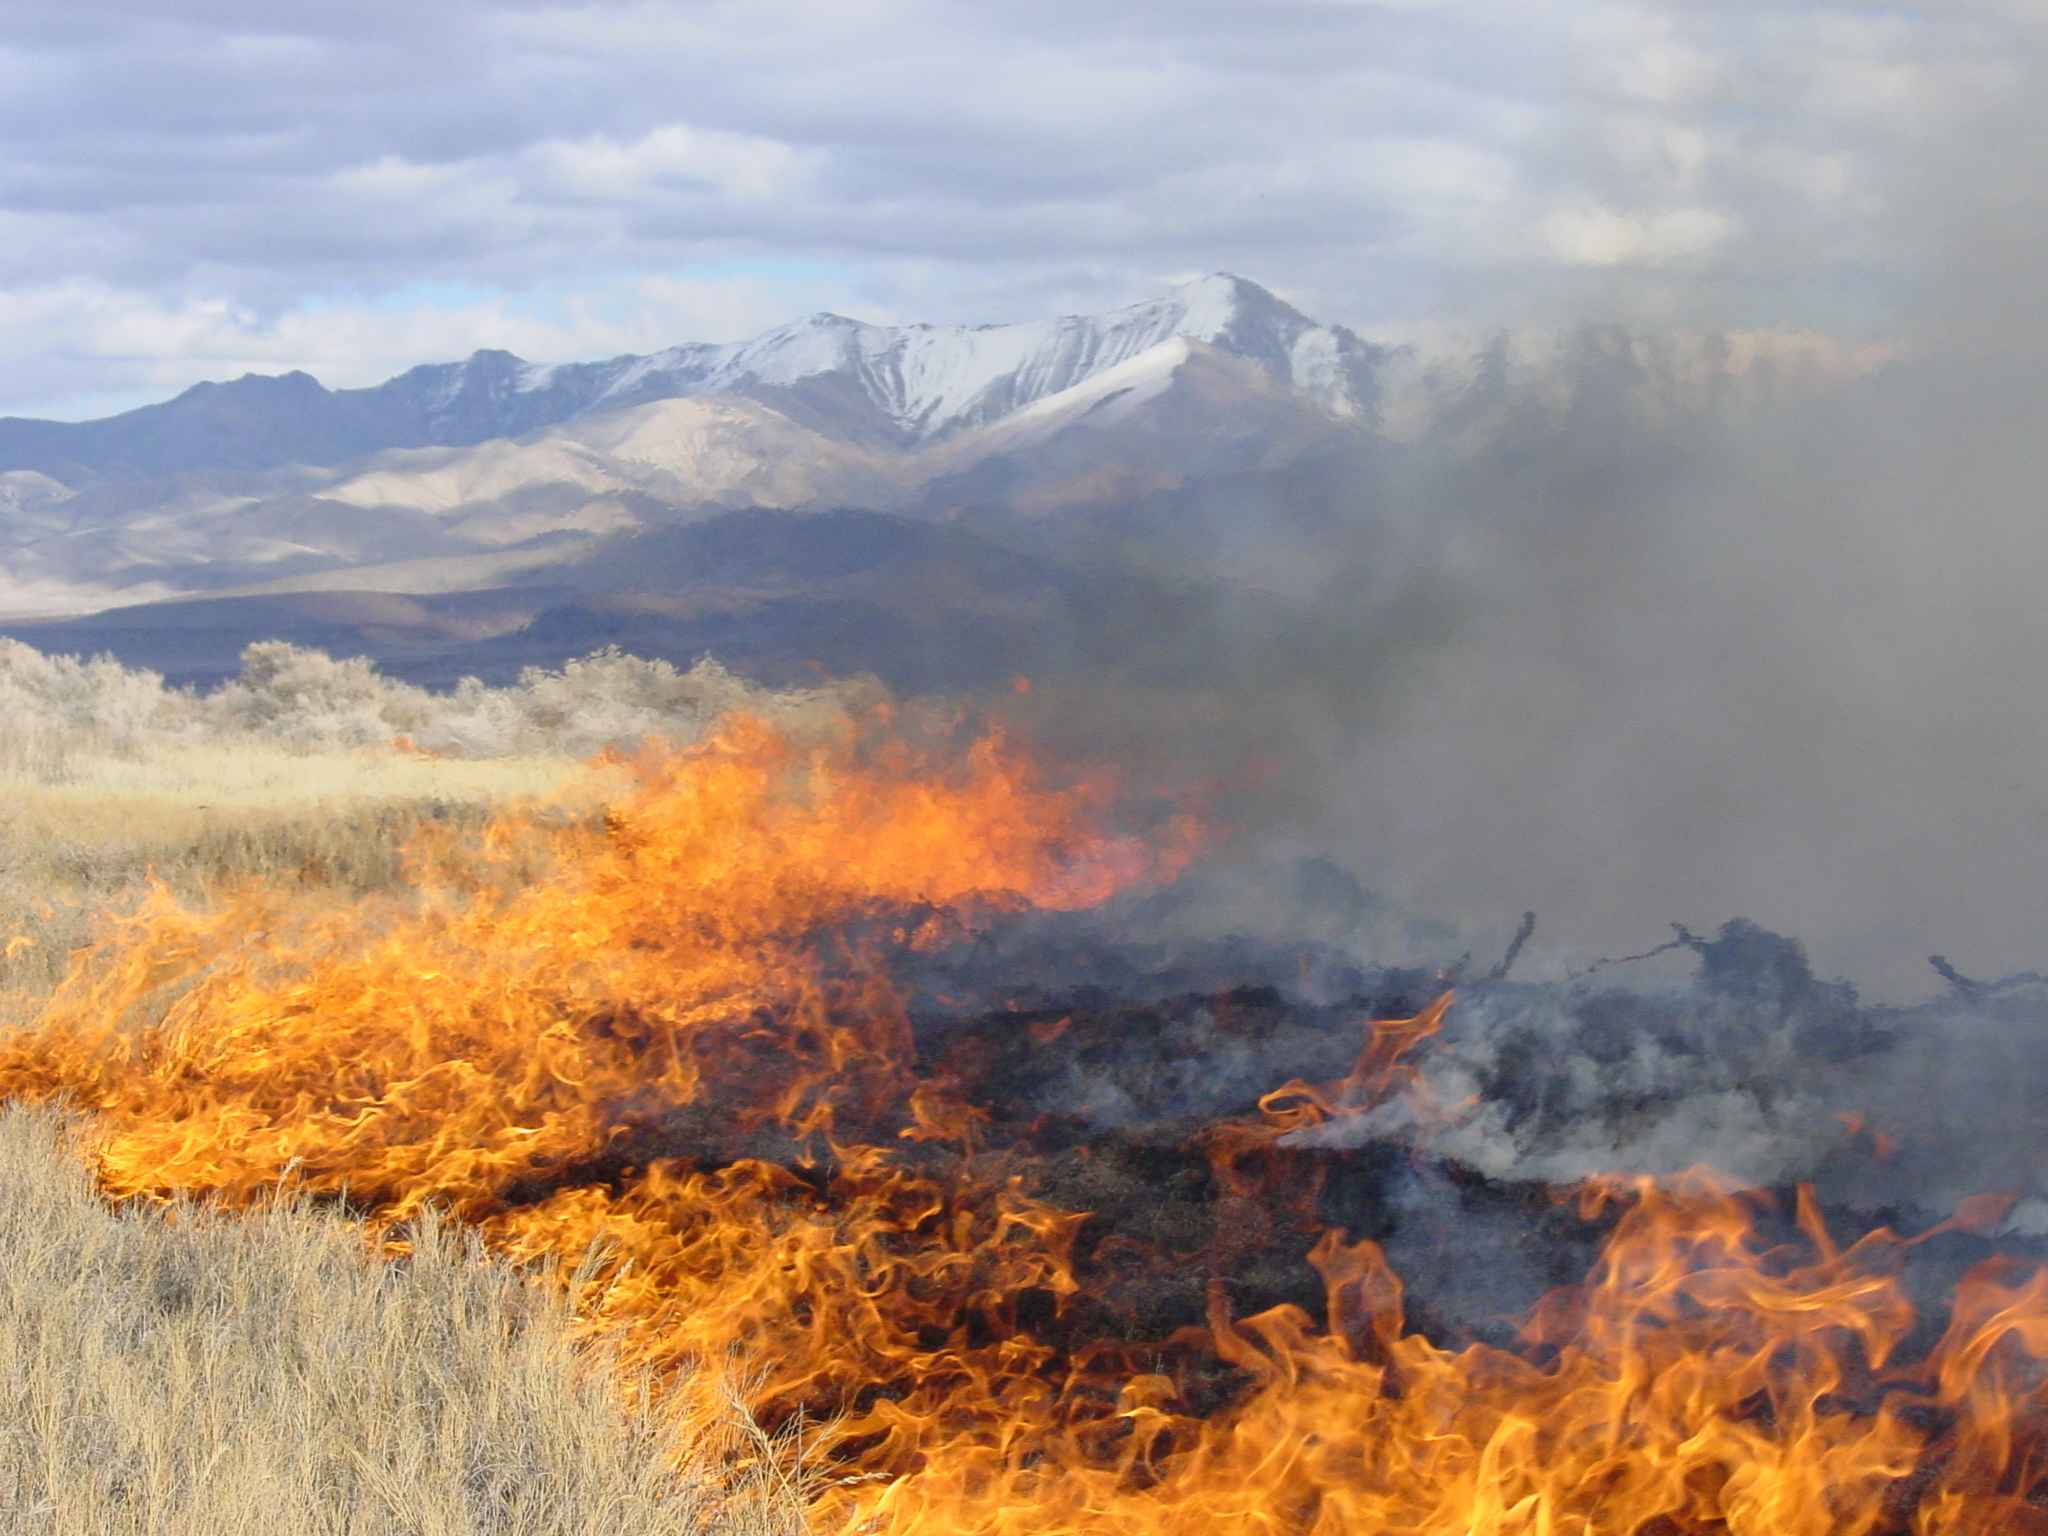 Prescribed Burns On Private Property